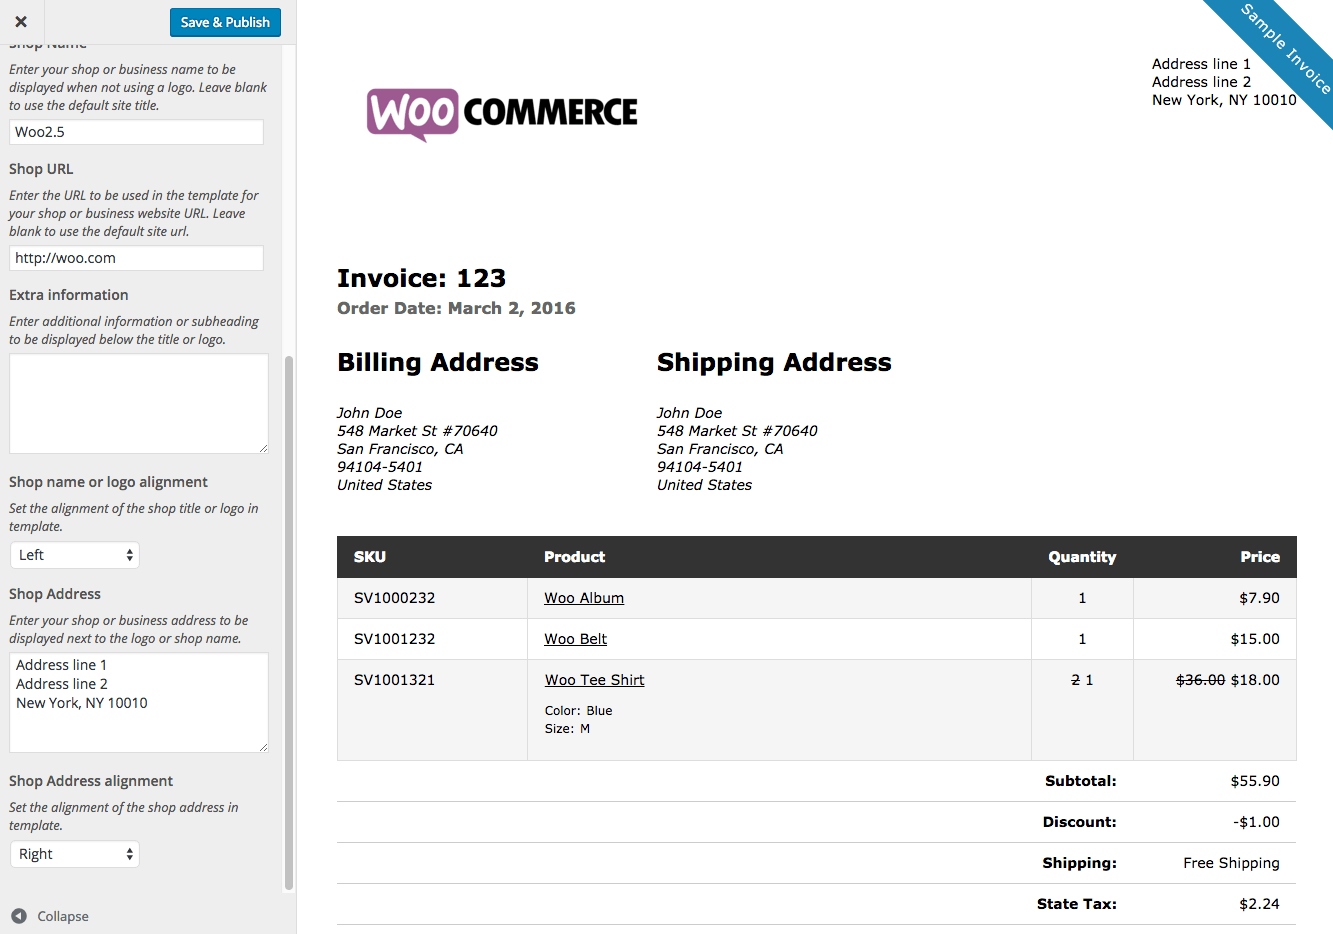 Shopdesignsus  Scenic Woocommerce Print Invoices Amp Packing Lists  Woocommerce Docs With Fetching Woocommerce Print Invoices  Packing Lists Customizer With Adorable Receipts Holder Also Cookie Receipts In Addition In Kind Receipt And Babies R Us Receipt As Well As Vehicle Sale Receipt Template Additionally Printable Taxi Receipts From Docswoocommercecom With Shopdesignsus  Fetching Woocommerce Print Invoices Amp Packing Lists  Woocommerce Docs With Adorable Woocommerce Print Invoices  Packing Lists Customizer And Scenic Receipts Holder Also Cookie Receipts In Addition In Kind Receipt From Docswoocommercecom